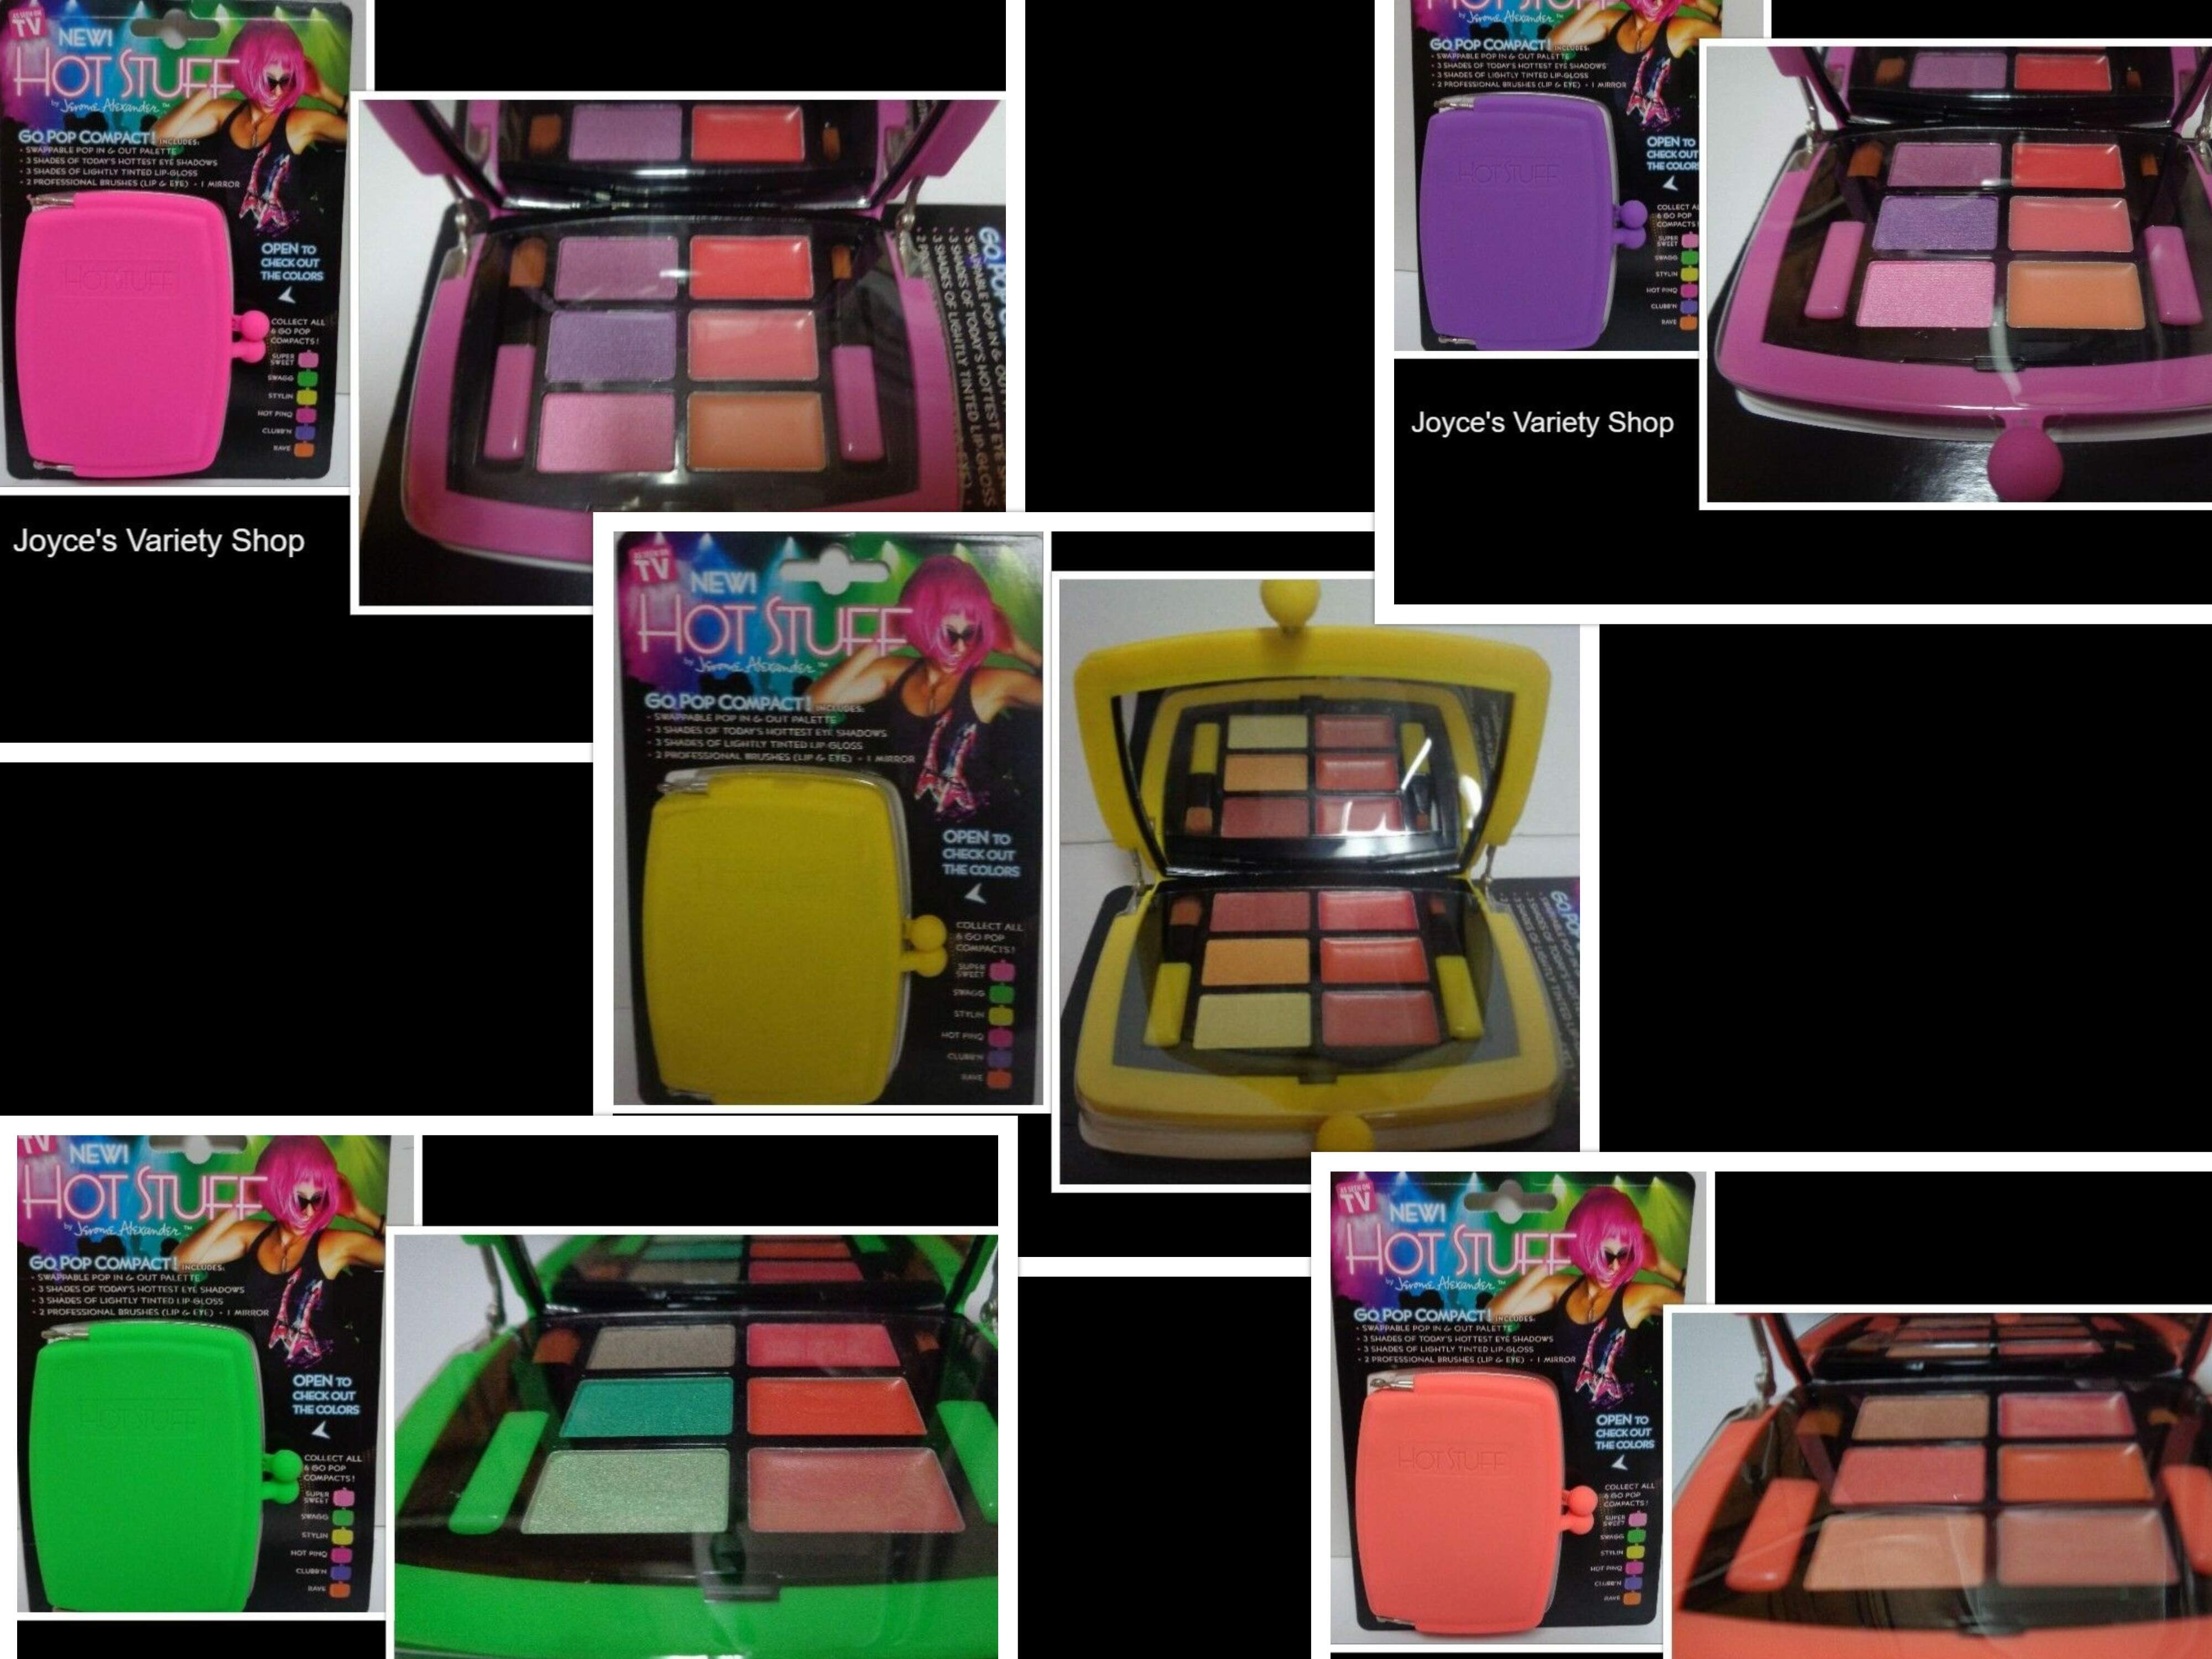 Hot Stuff Eye Shadow Lip Gloss Go Pop Compact Case Many Shades & Colors